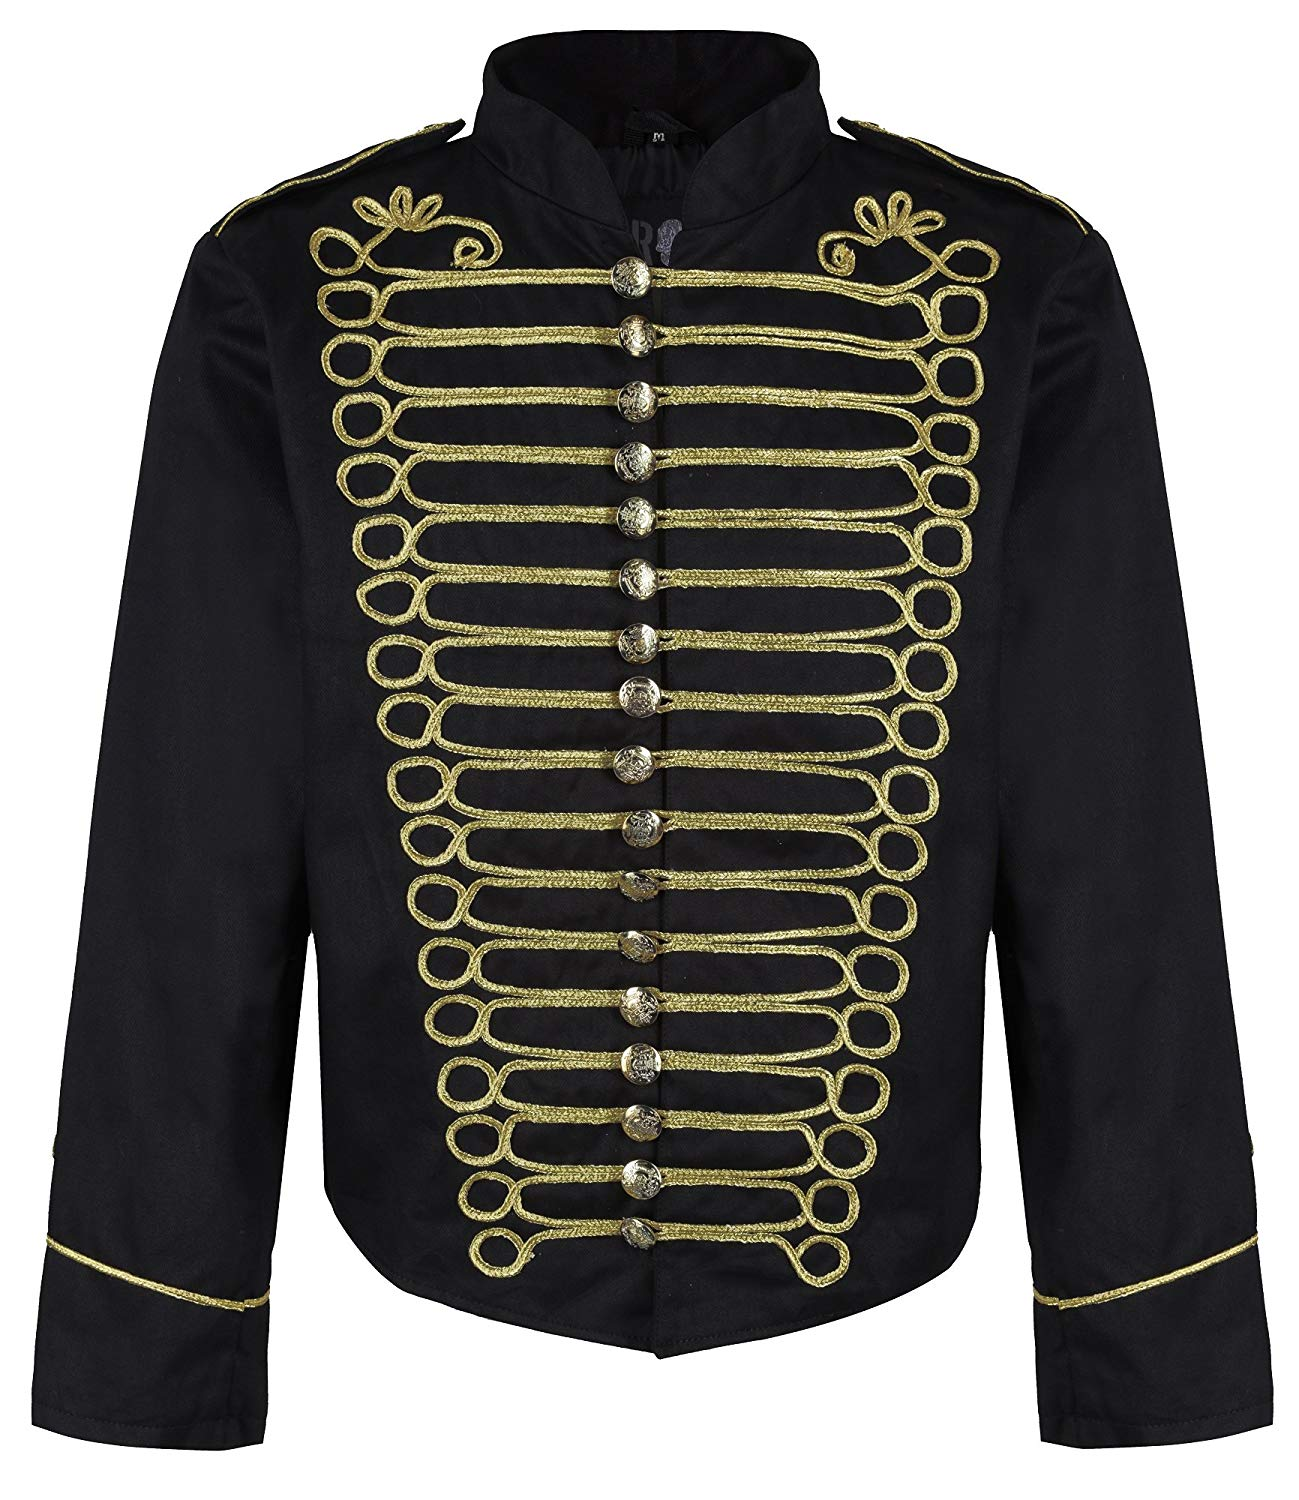 17c23061df Get Quotations · Ro Rox Men s Military Drummer Steampunk Parade Jacket  (Black ...